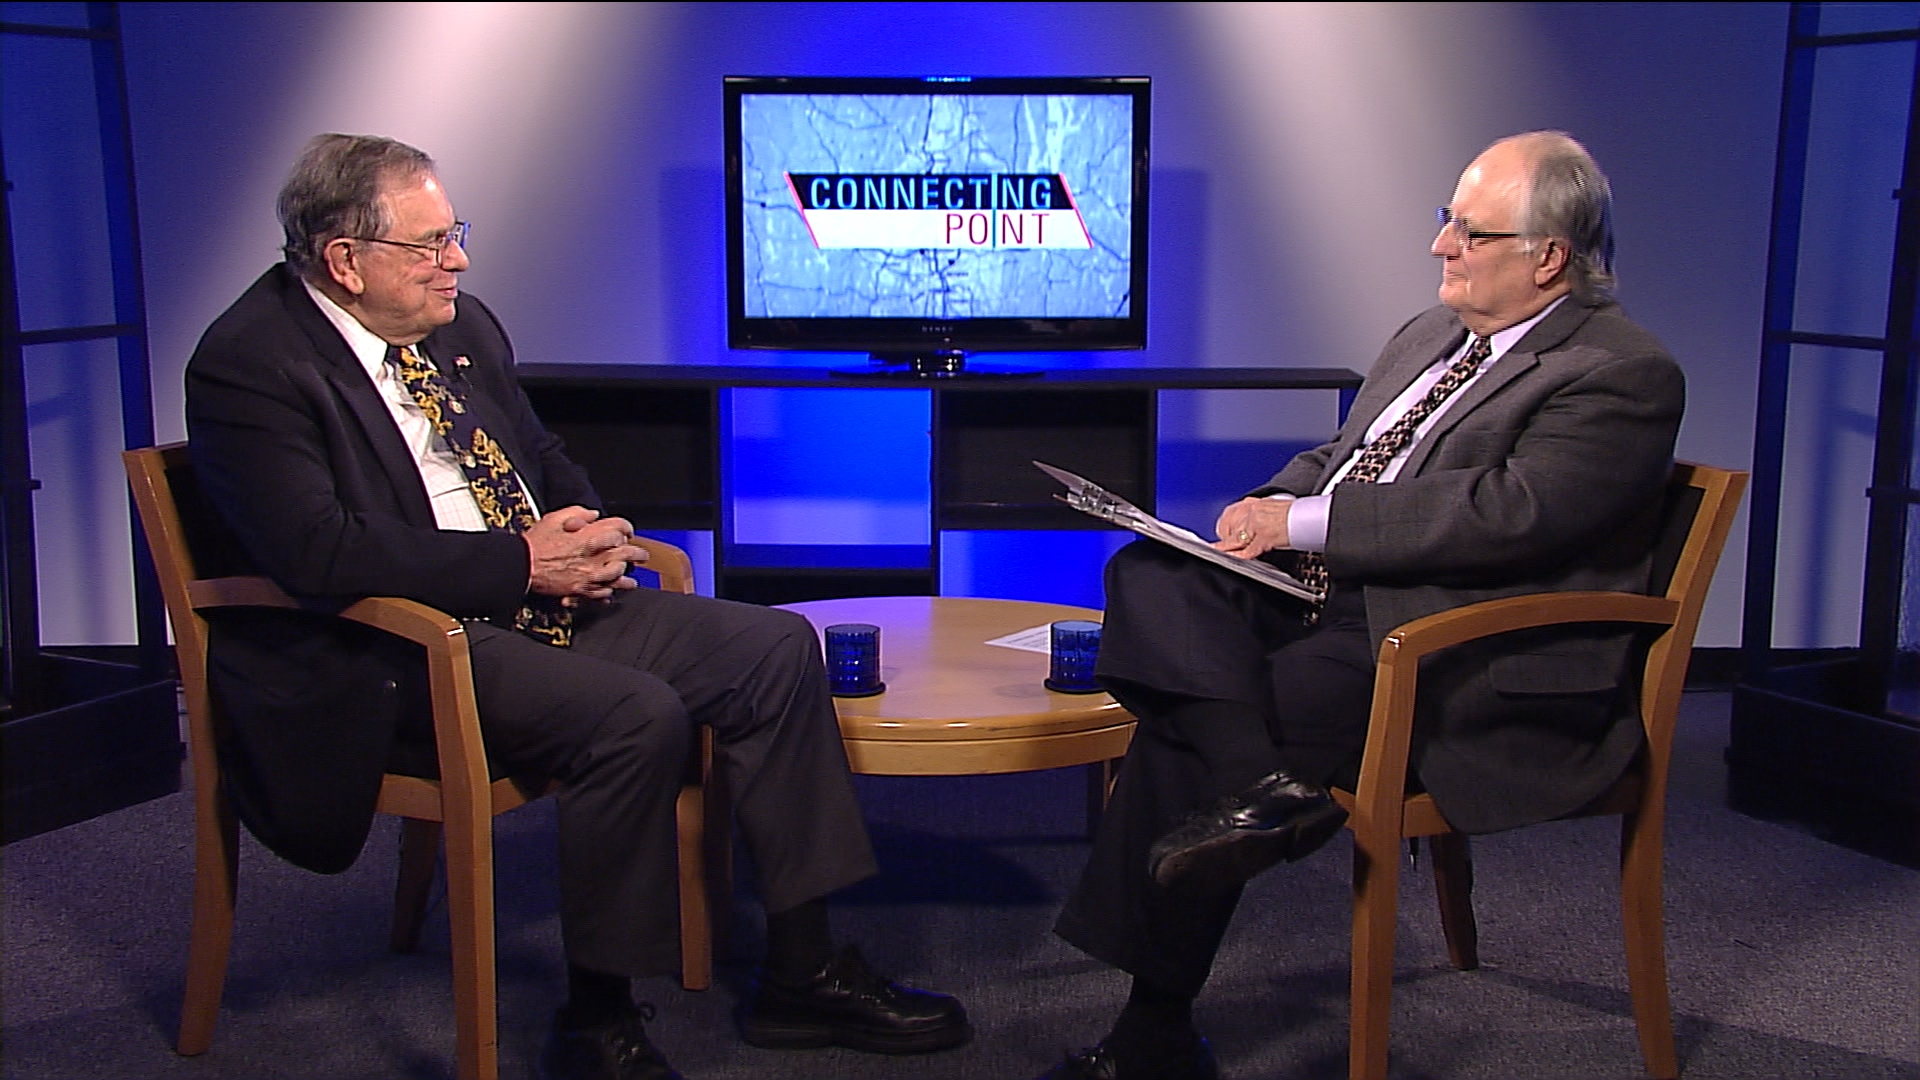 WNEU School of Law Professor and Constitutional expert Arthur Wolf discusses the controversy surrounding the appointment of a new Justice to the Supreme Court of the United States